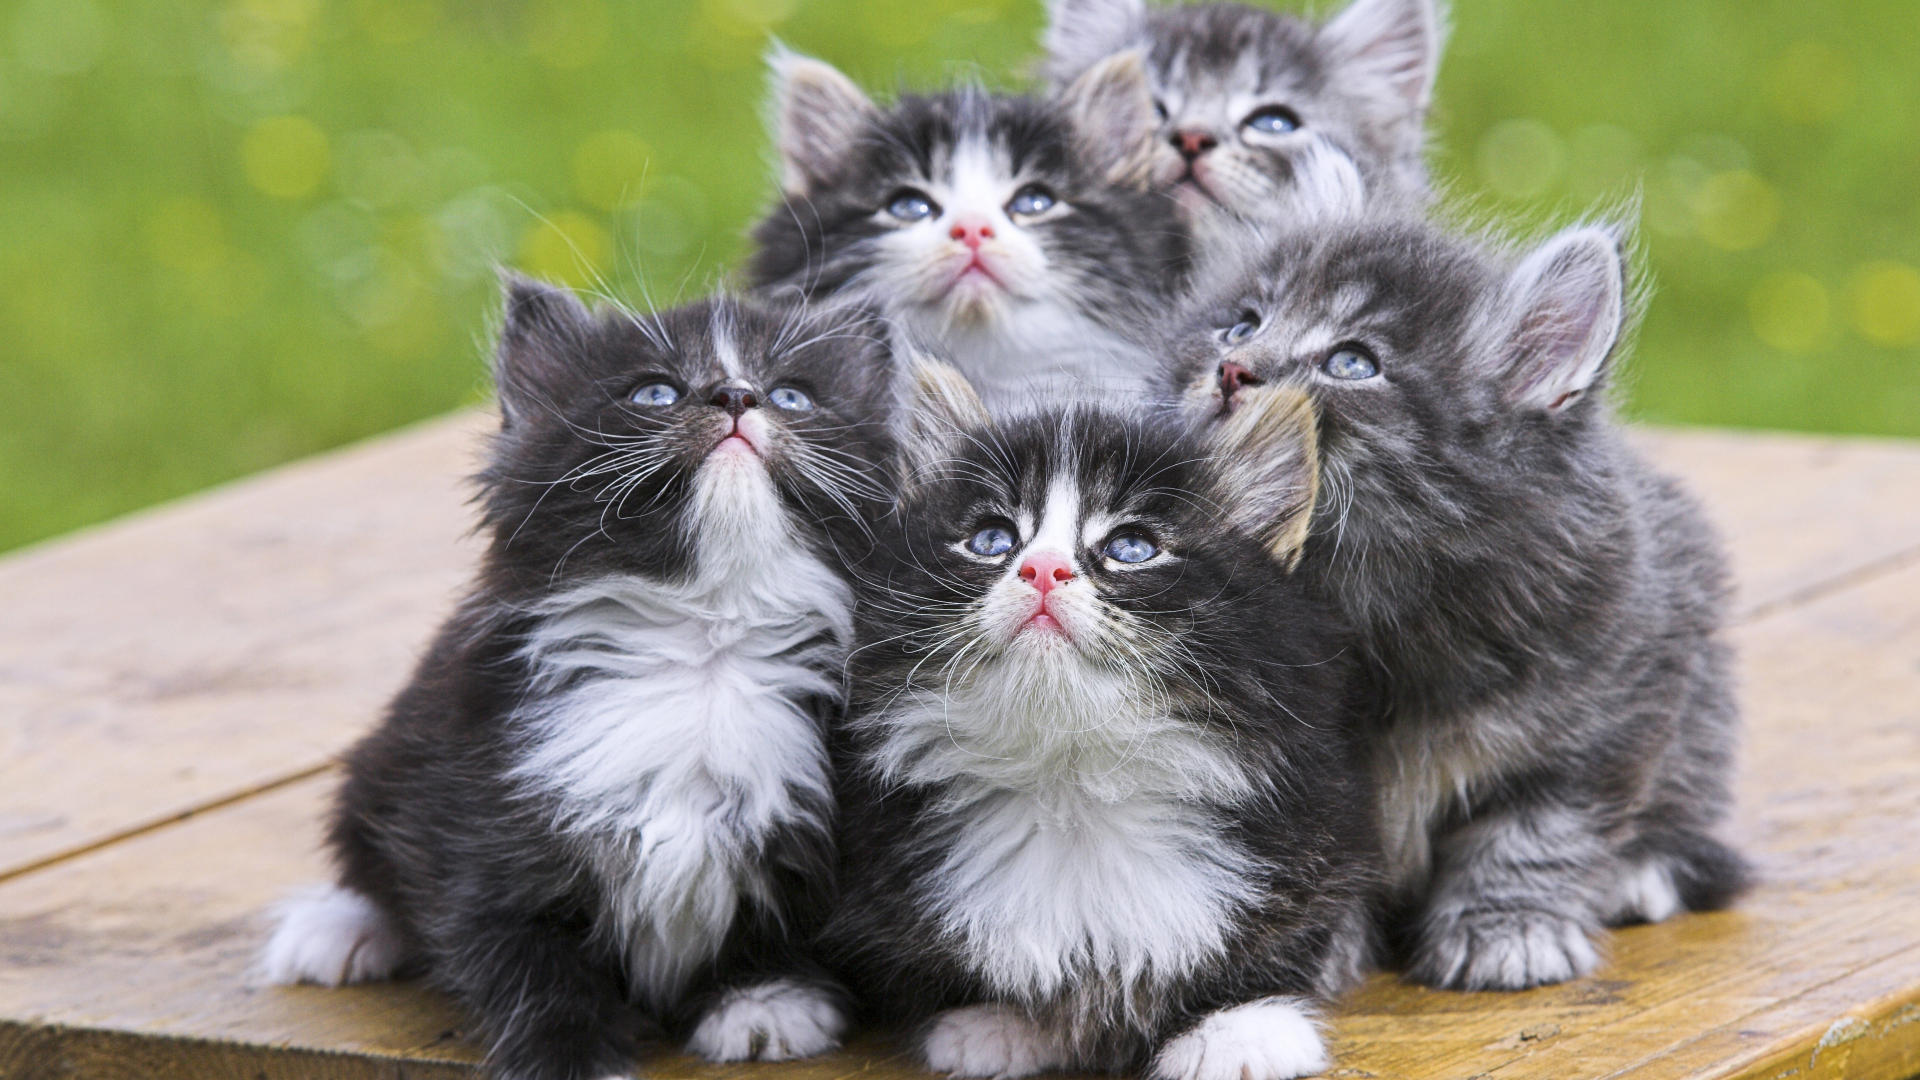 Downloads Persian Kittens HD Wallpaper High Quality Wallpapers 1920x1080